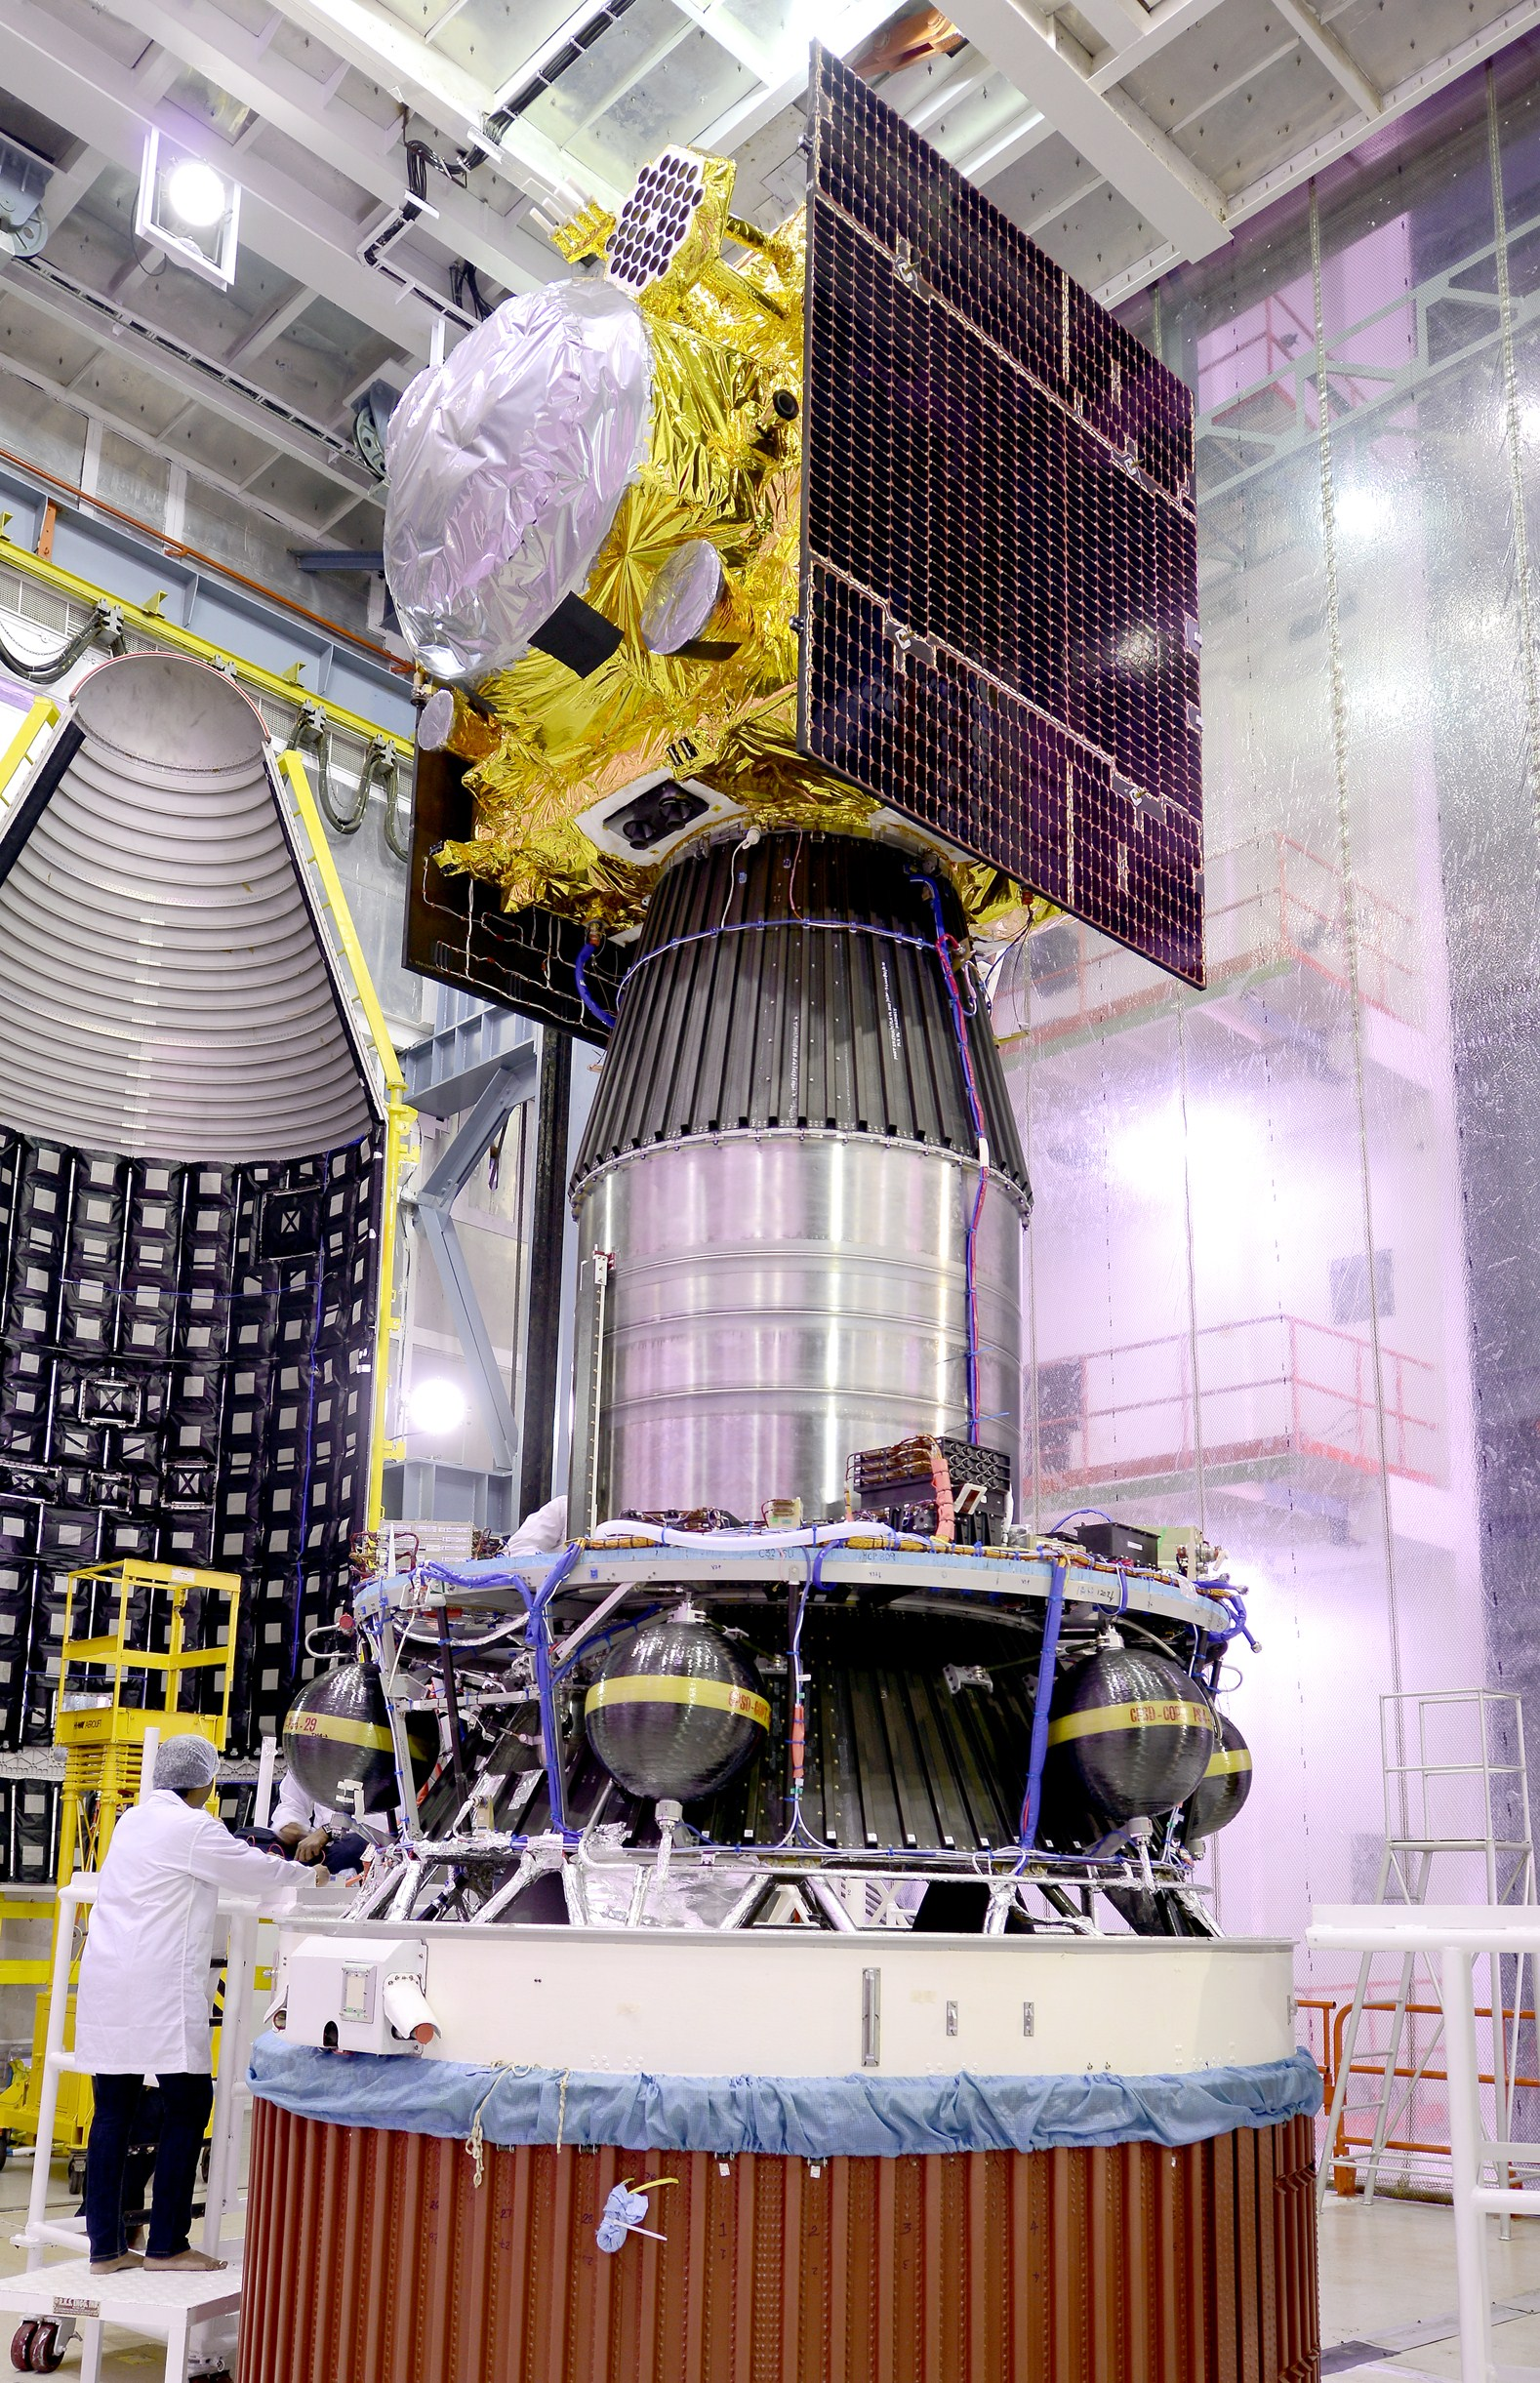 IRNSS-1F integrated with PSLV-C32